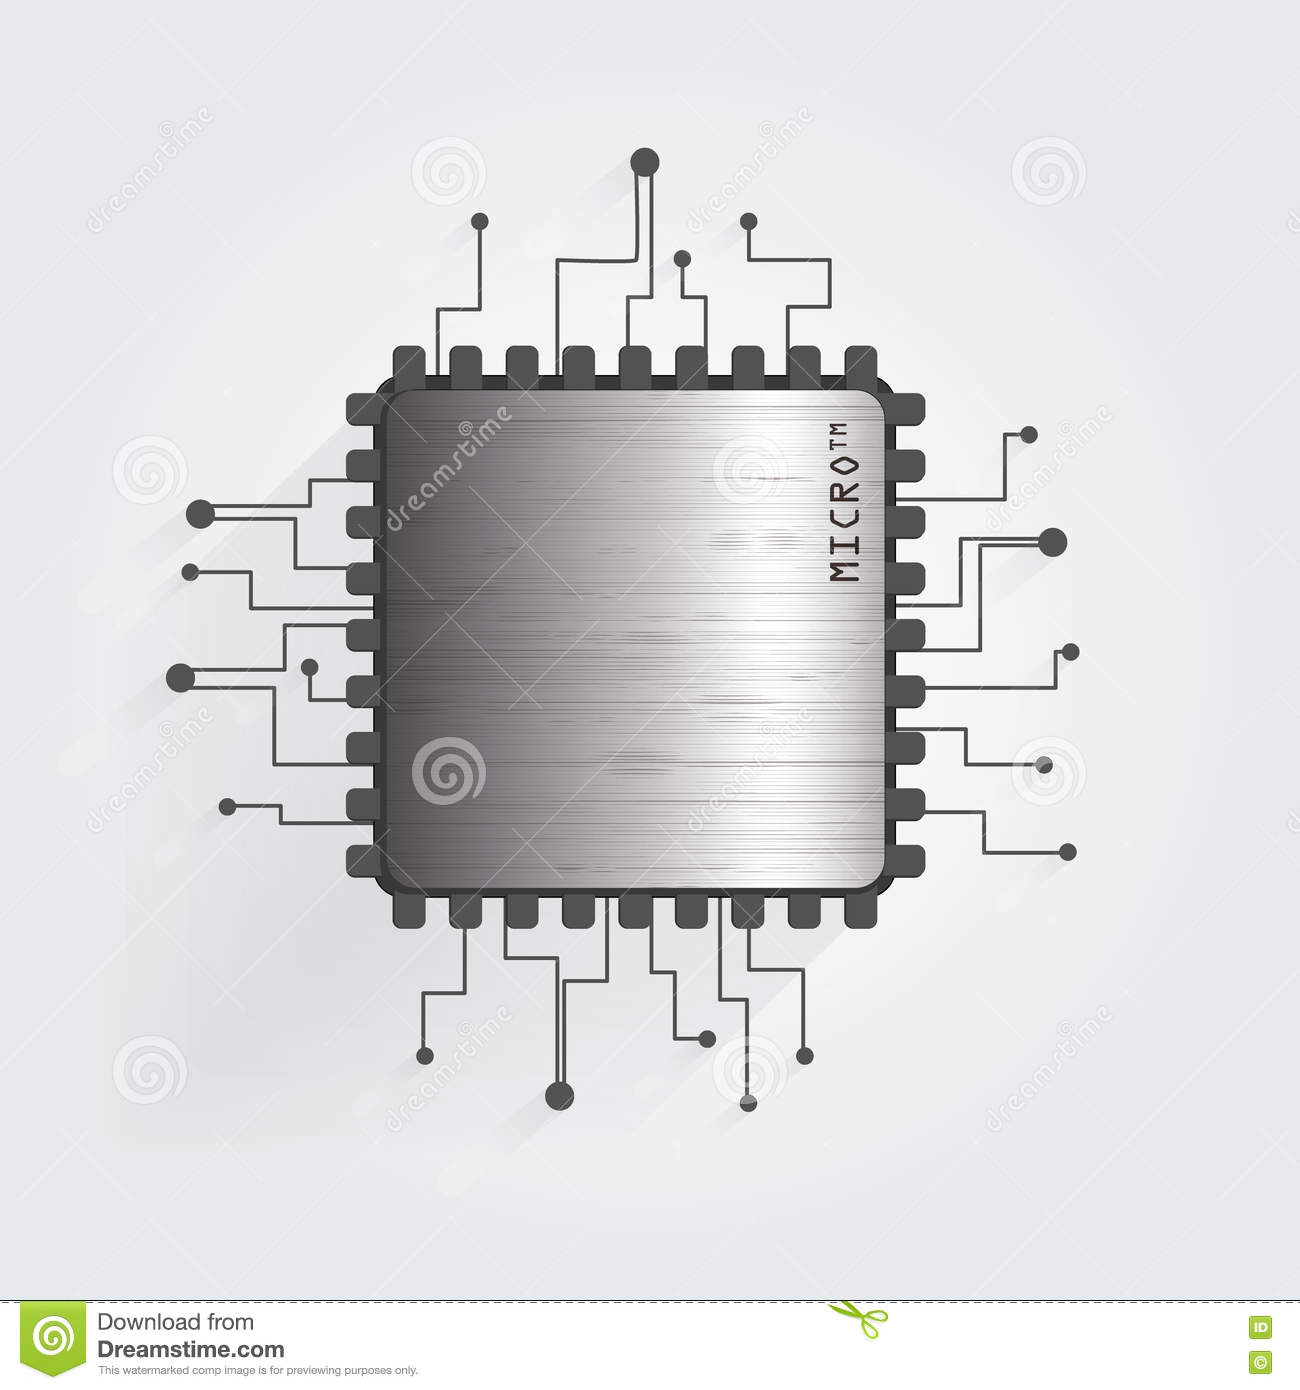 The Chip On A White Background Vector Stock Illustration Of Schematic Diagram Electronics Circuit Electronic Transistor